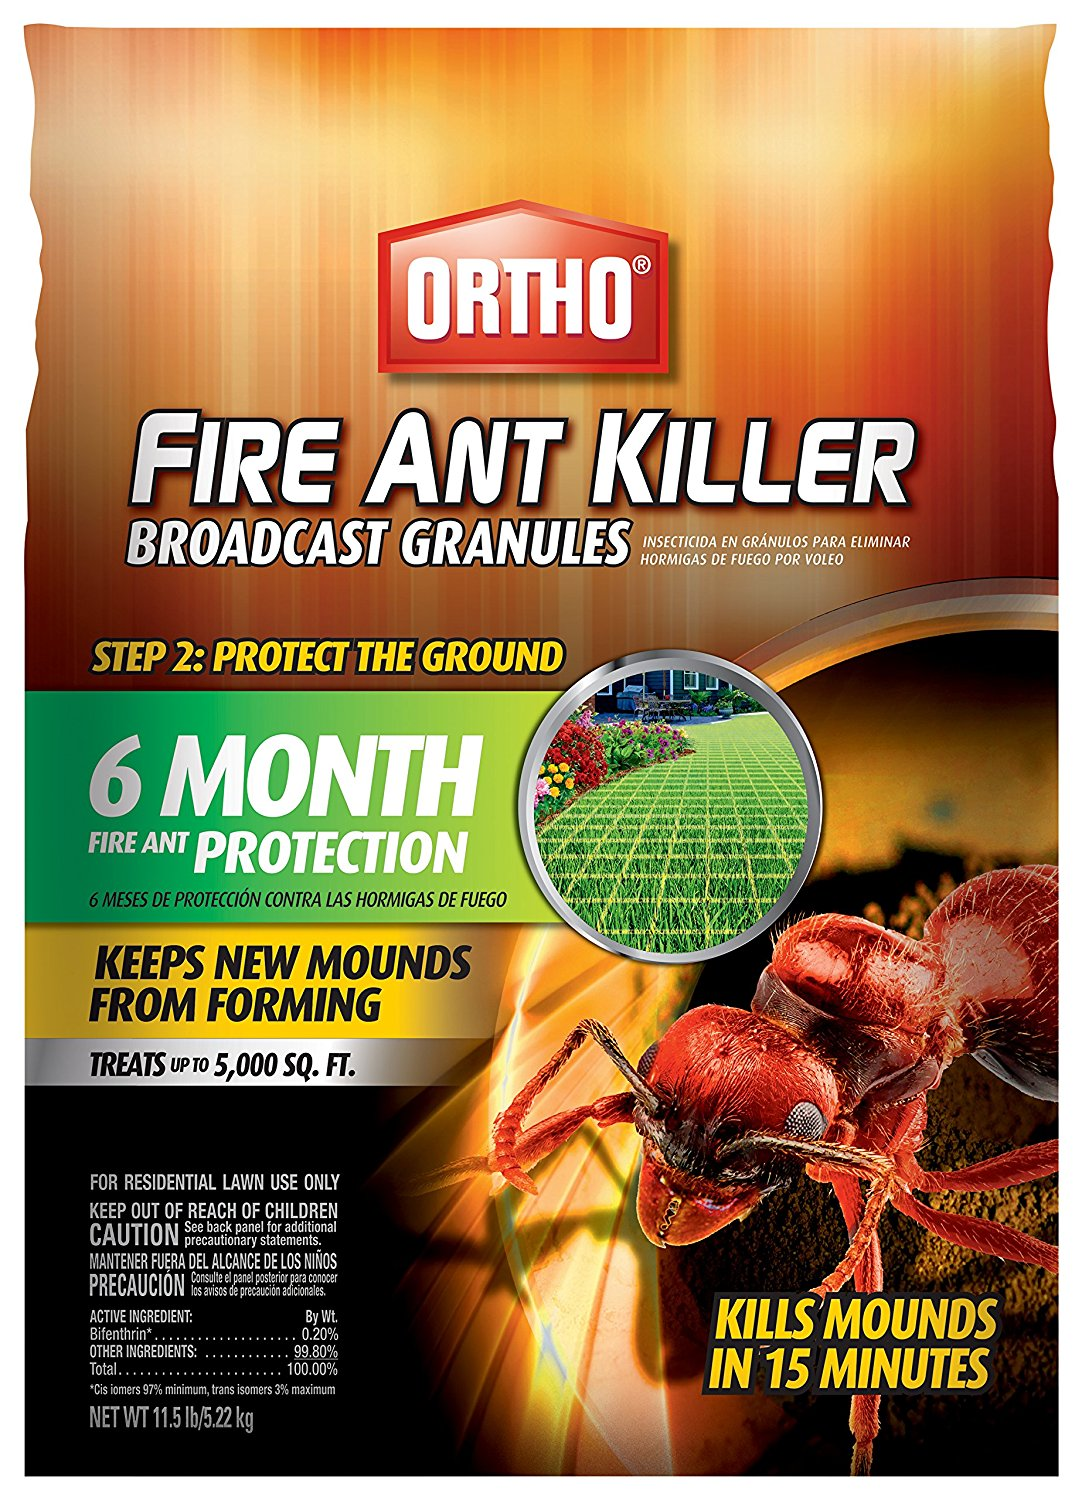 Ortho Fire Ant Killer